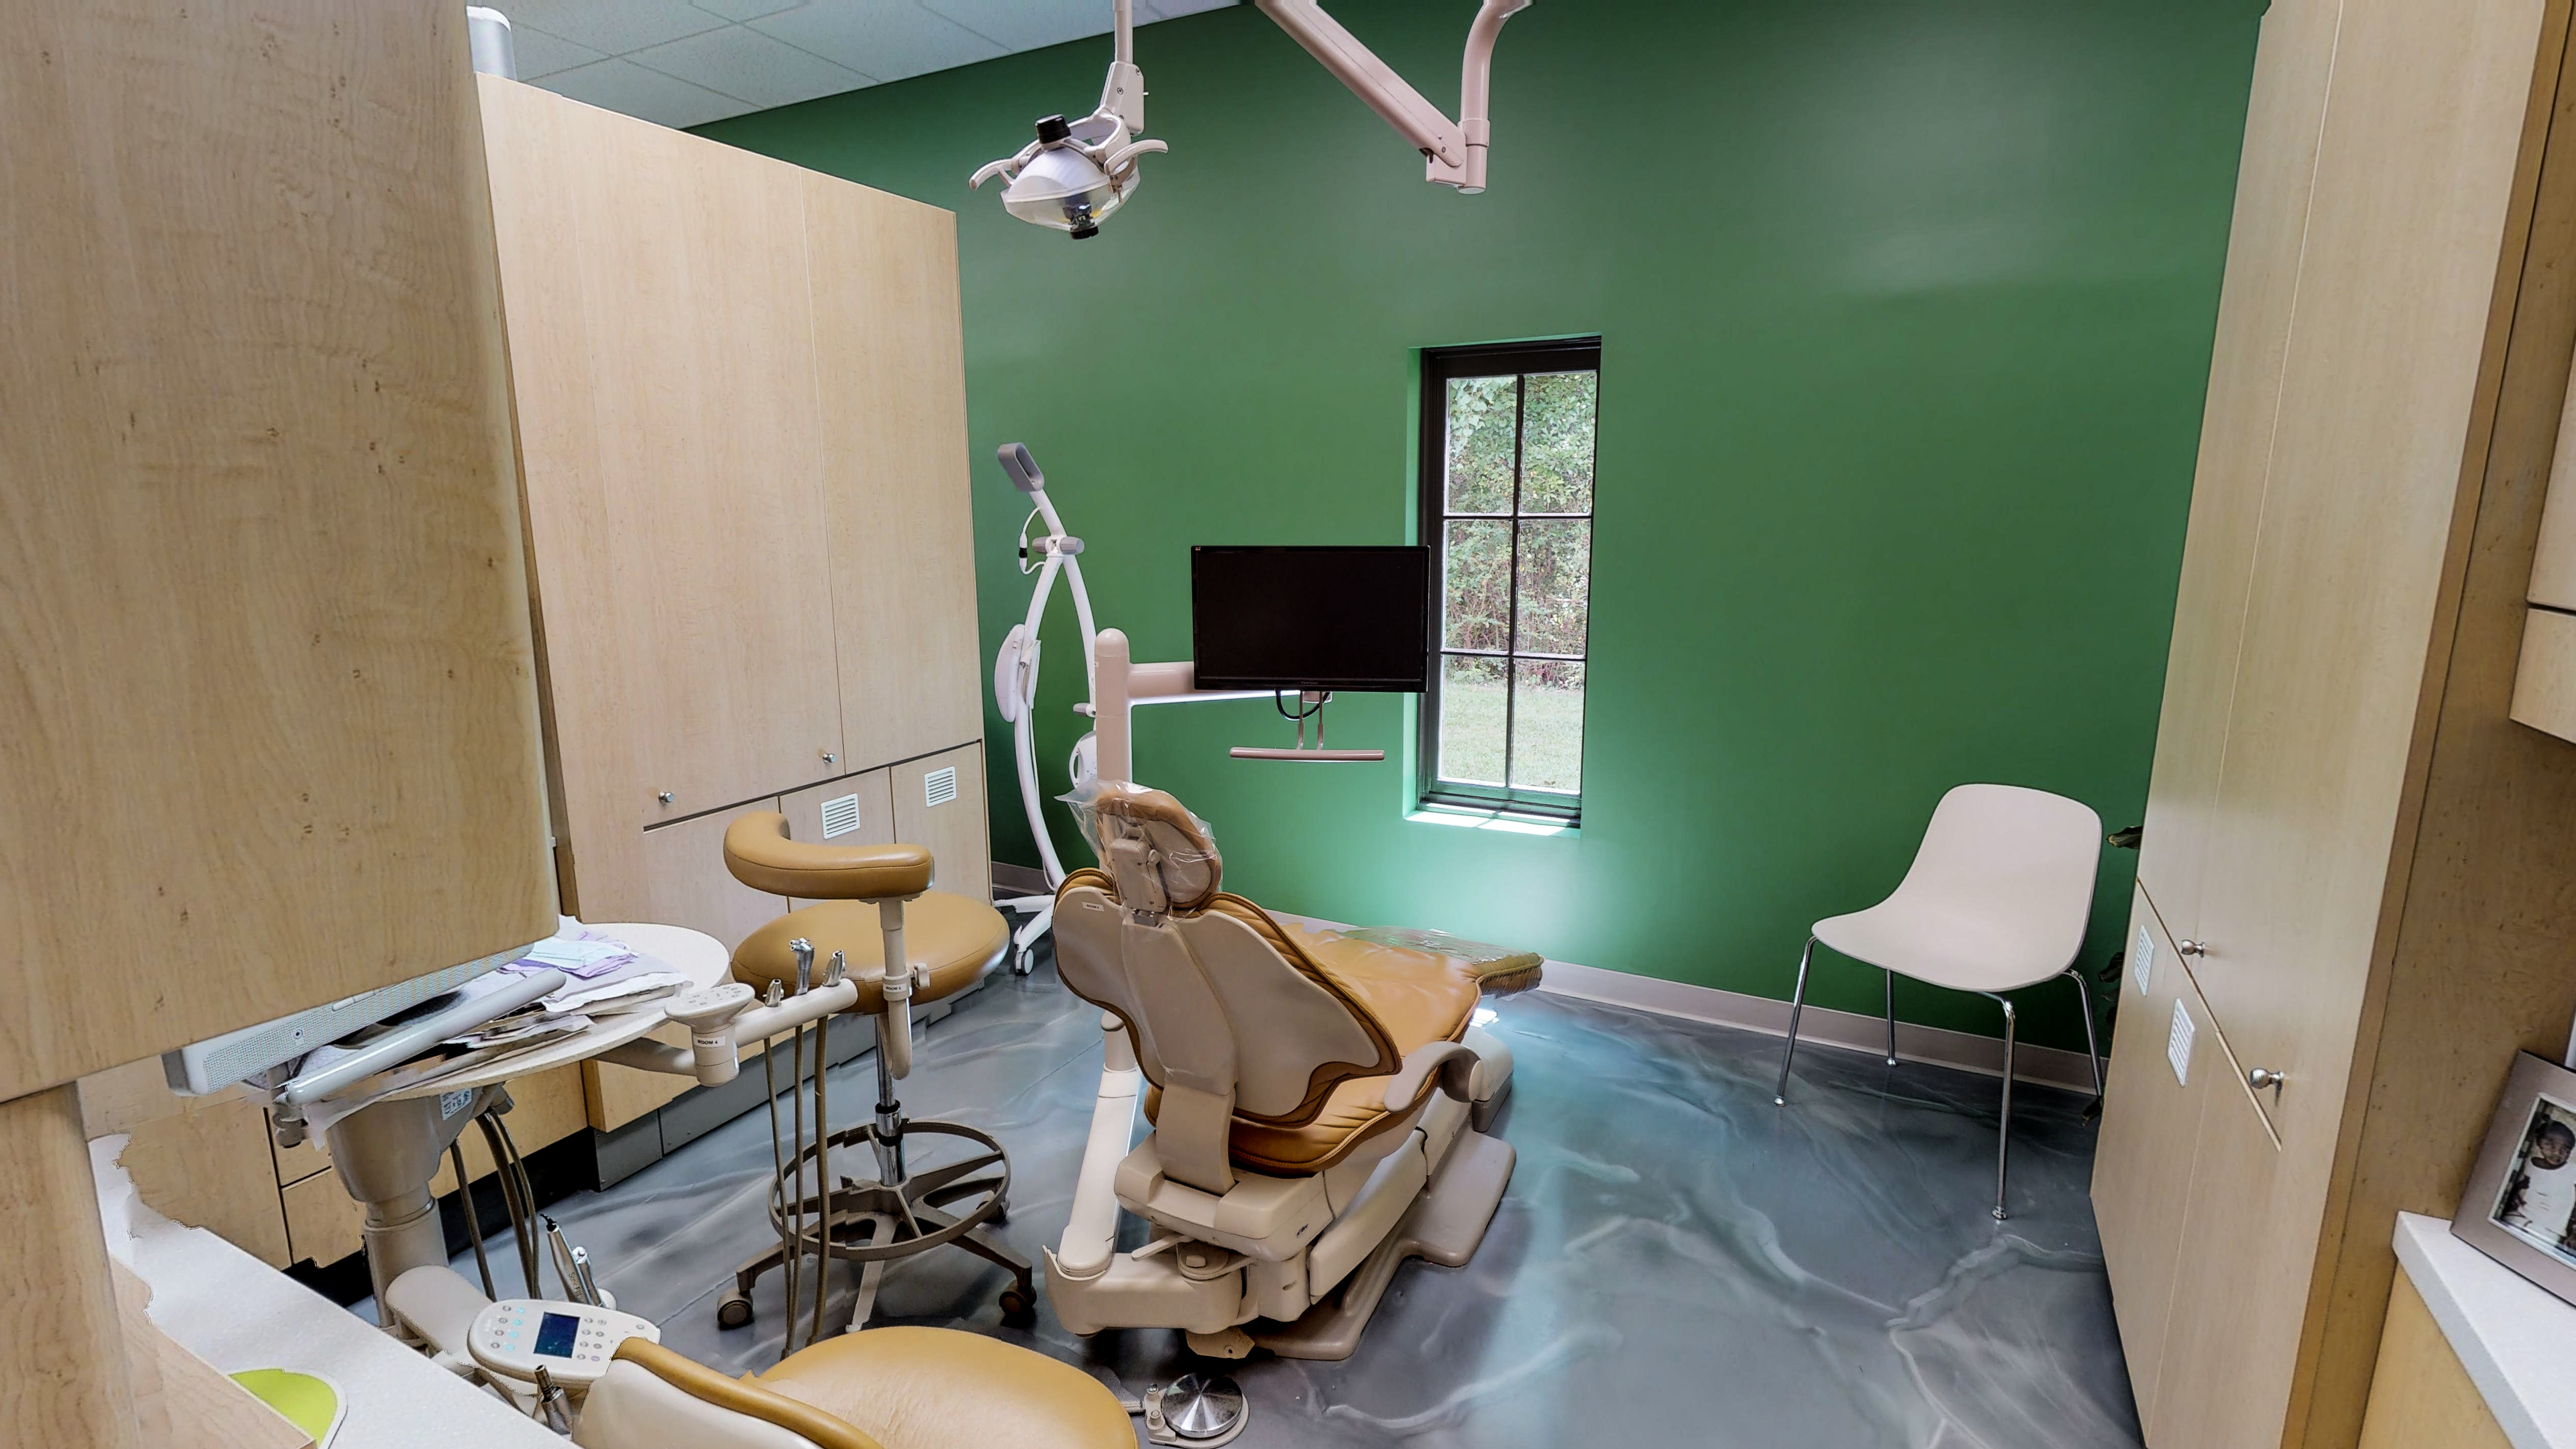 Baggett Dental 06212019 201929